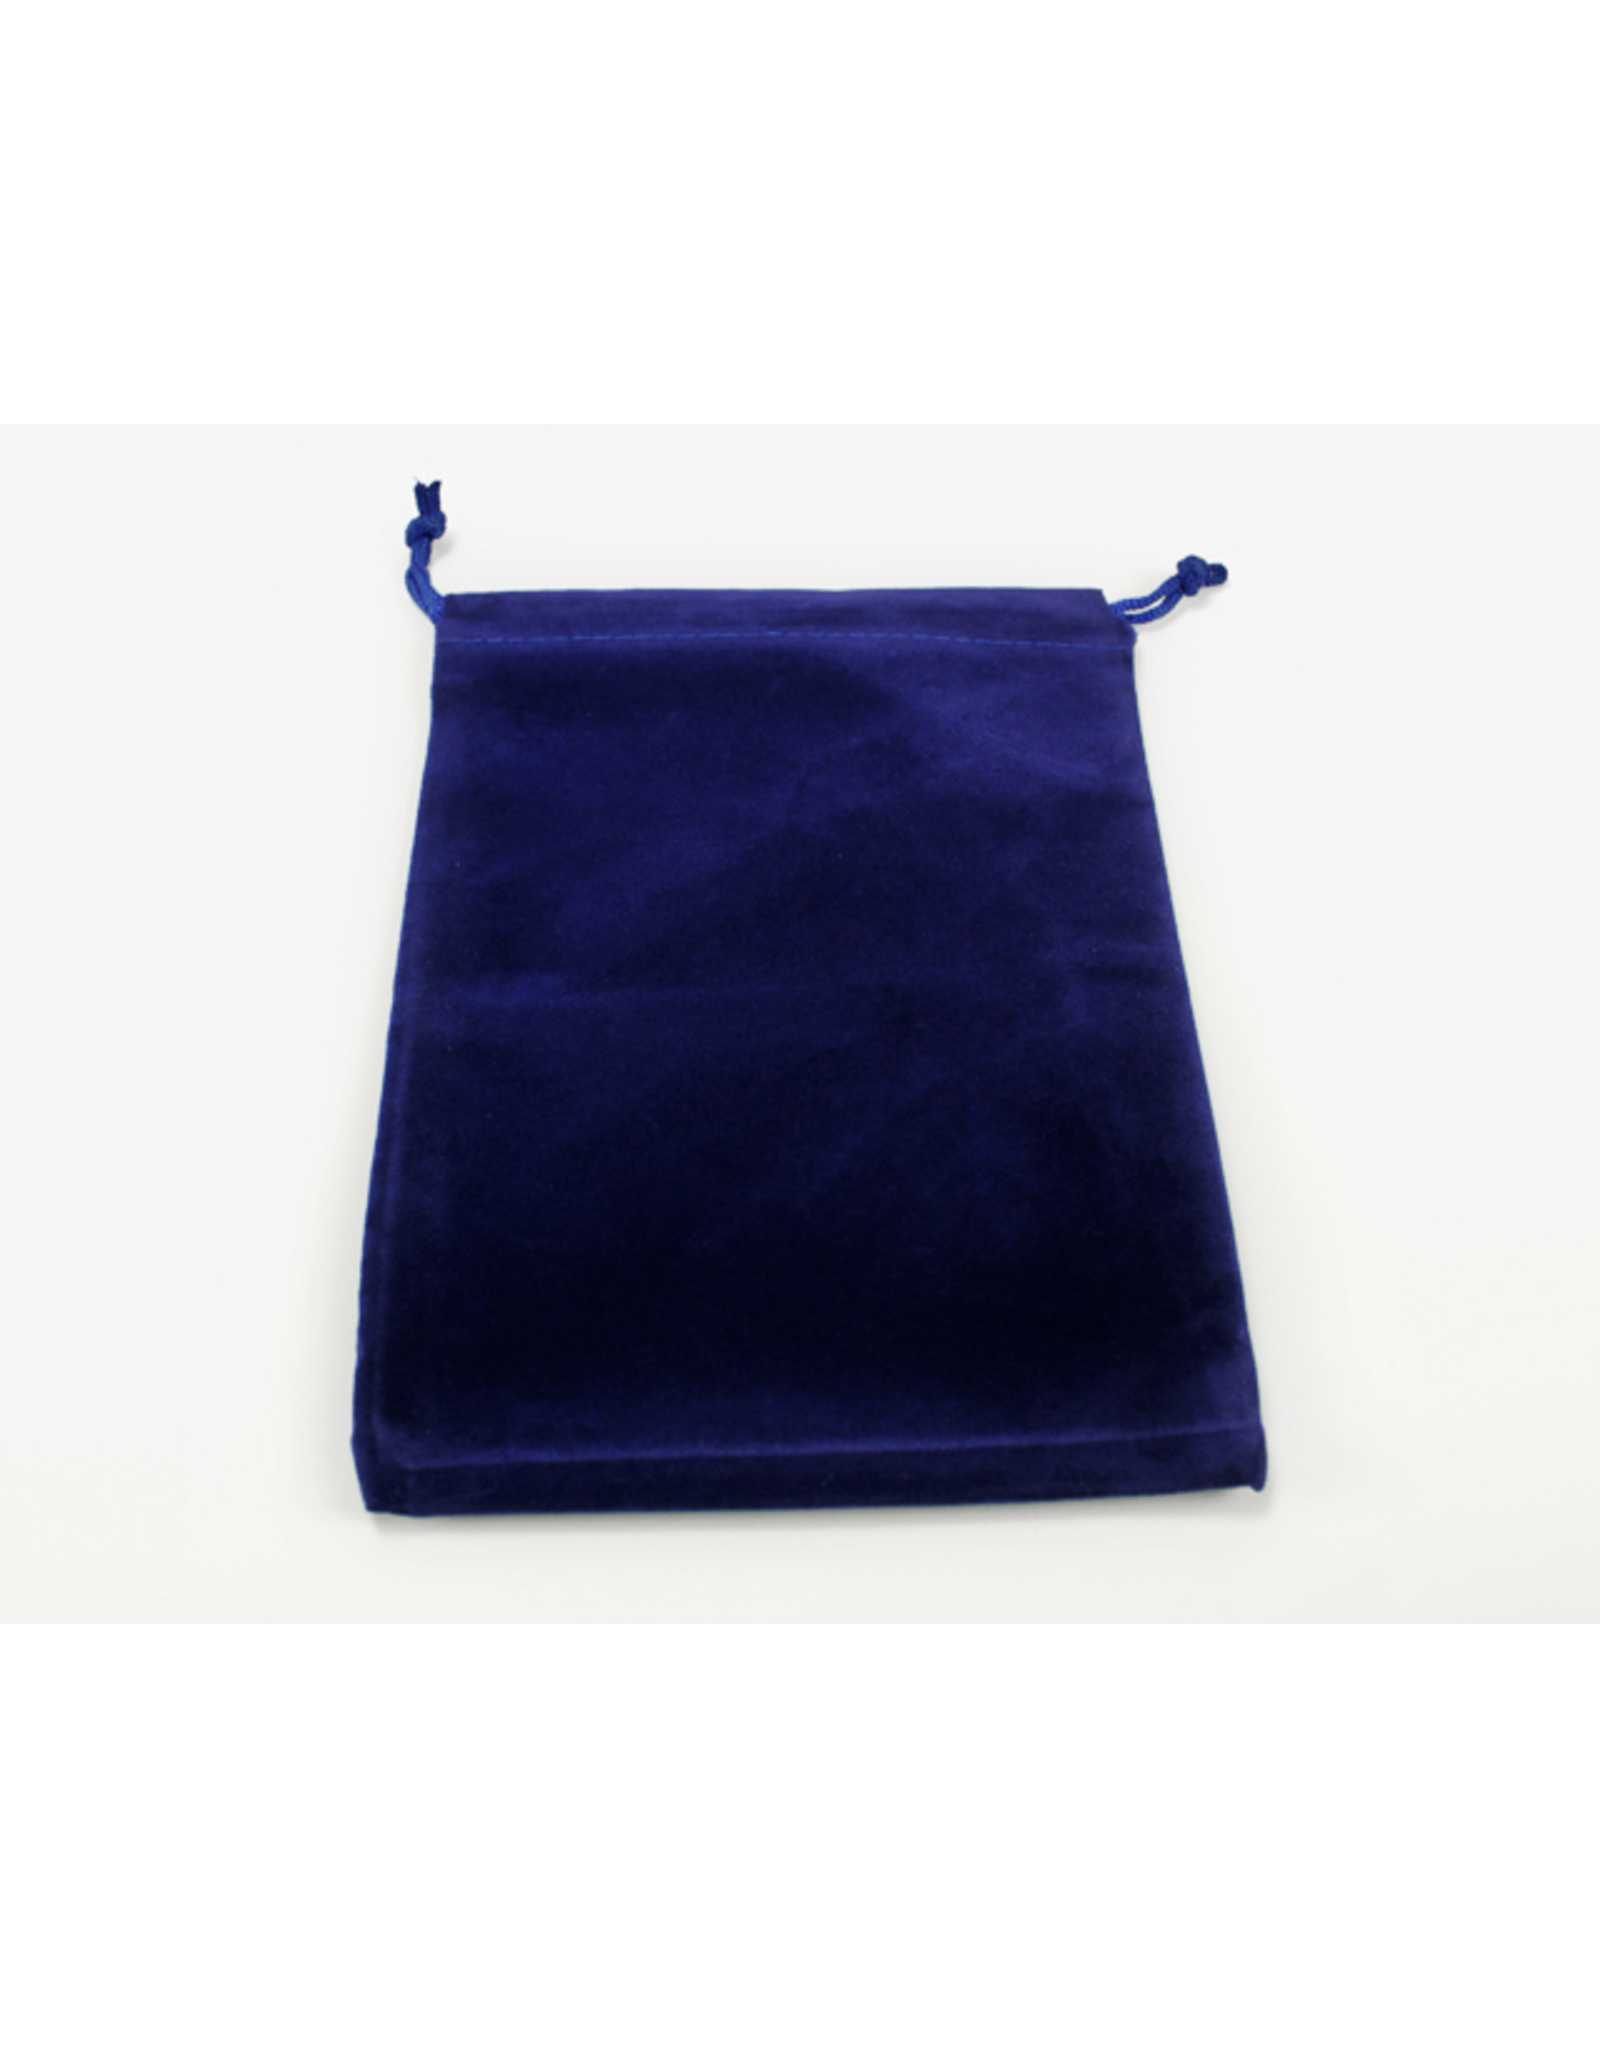 Chessex Dice Bag: Suede Royal Blue (Large)